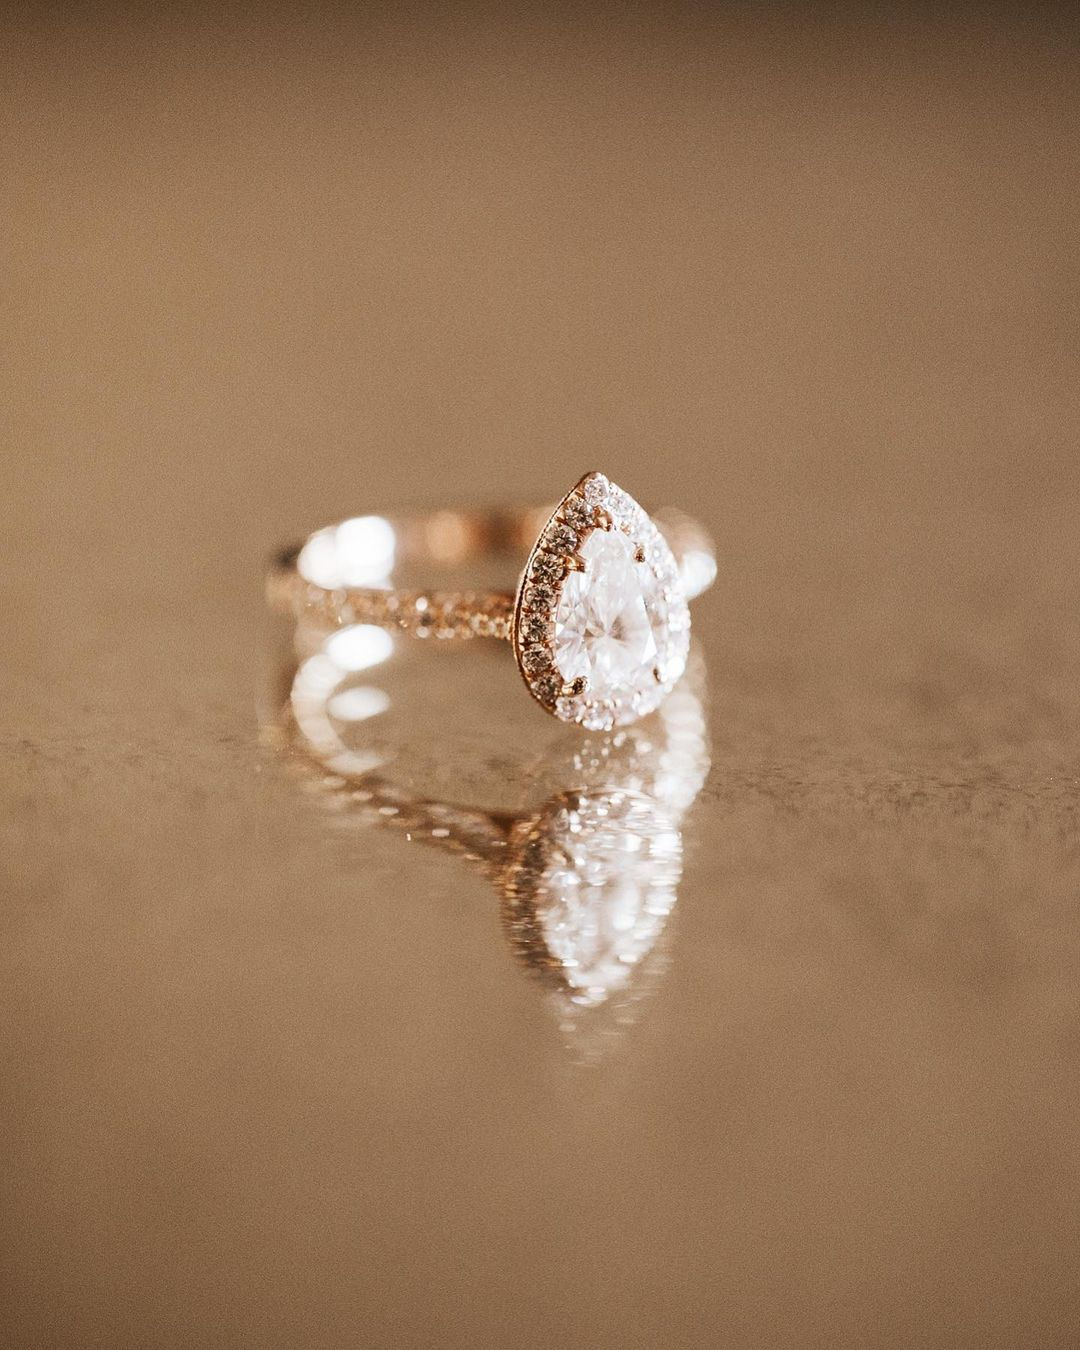 A pear-shaped wedding ring placed on a reflective surface